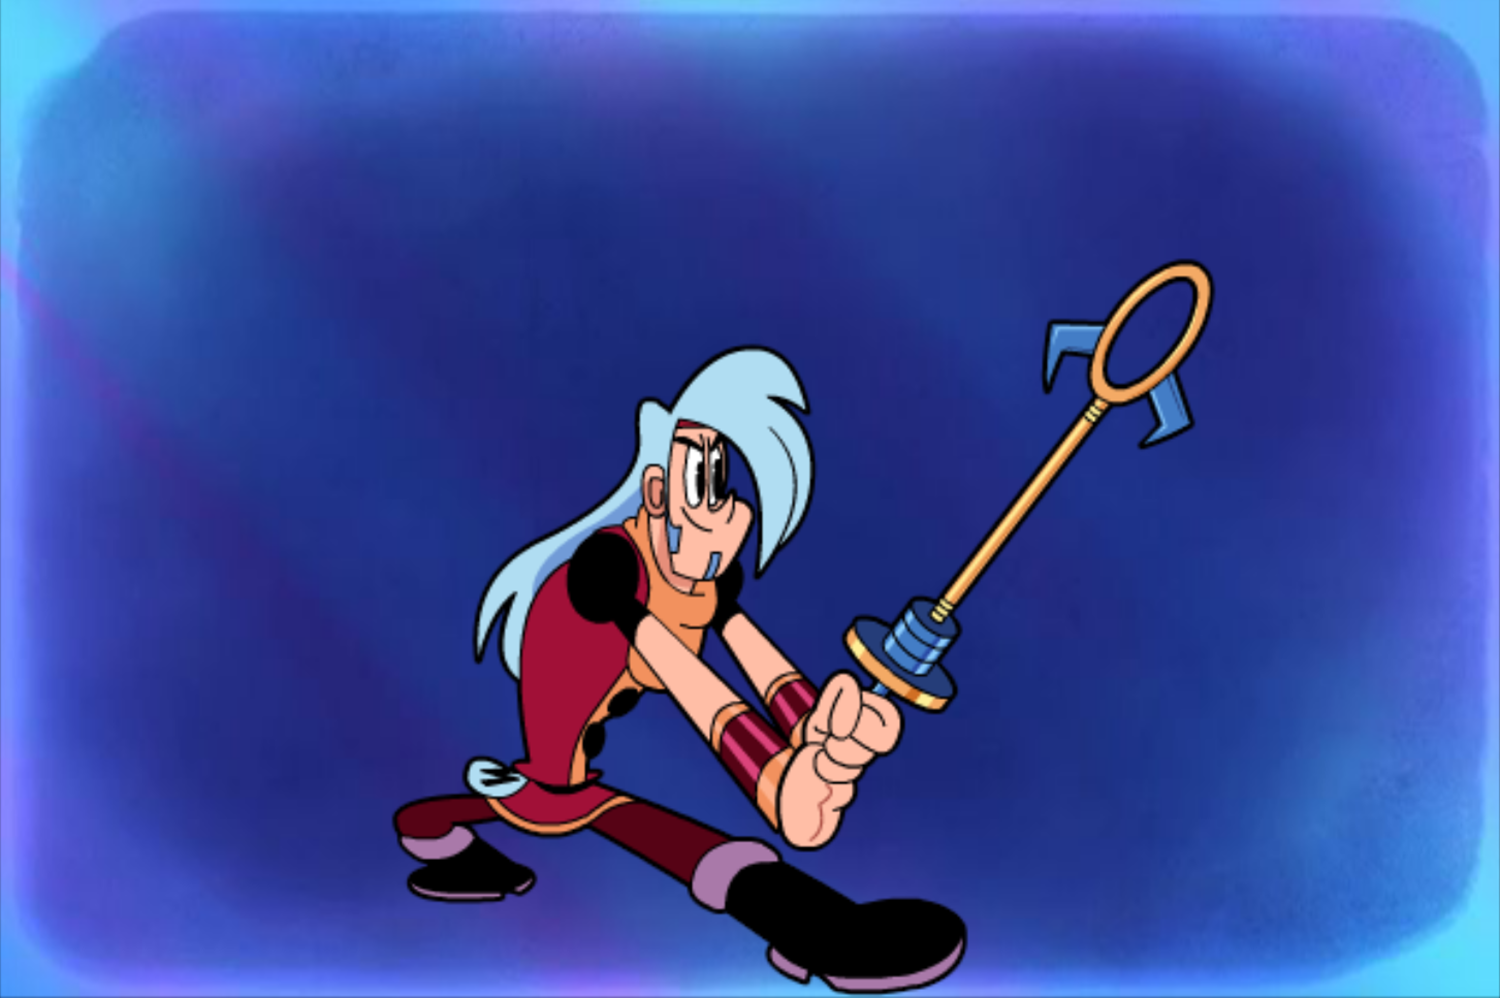 Mighty MagiSwords Hoversword Hustle Game Exploding Bubble Magisword Intro Screenshot.